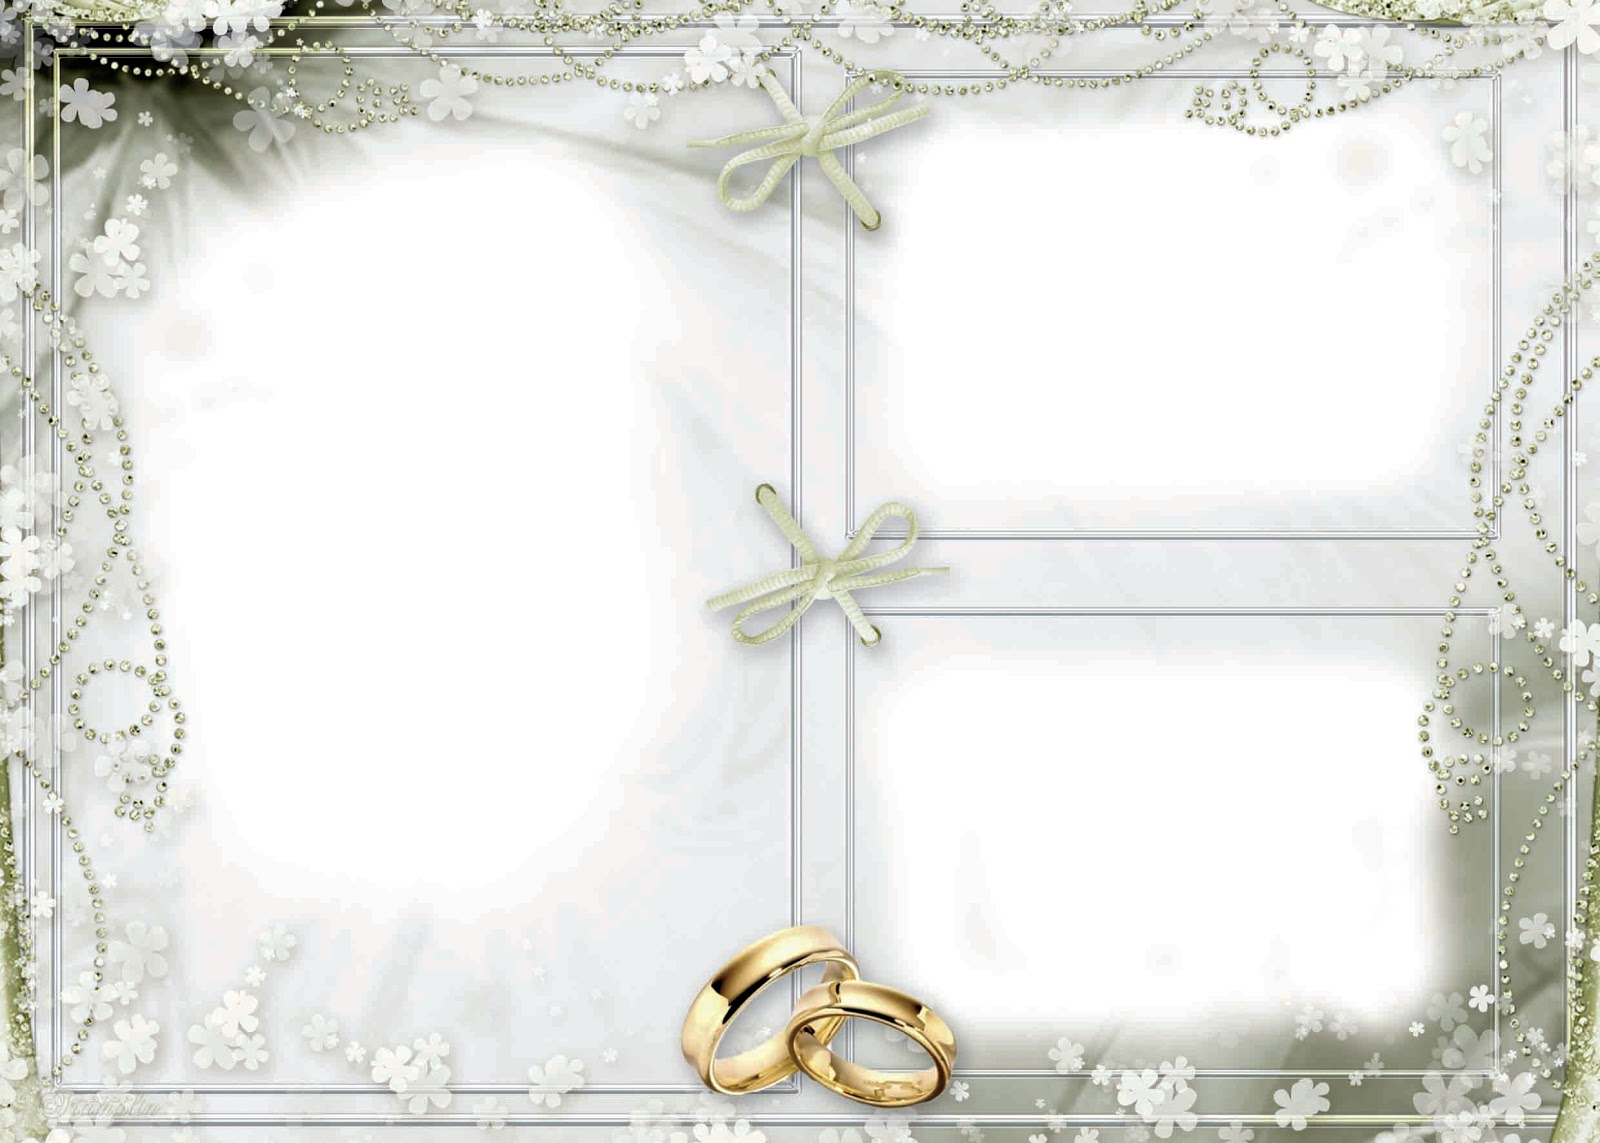 Awesome wedding frames png free download - Wedding PNG Download